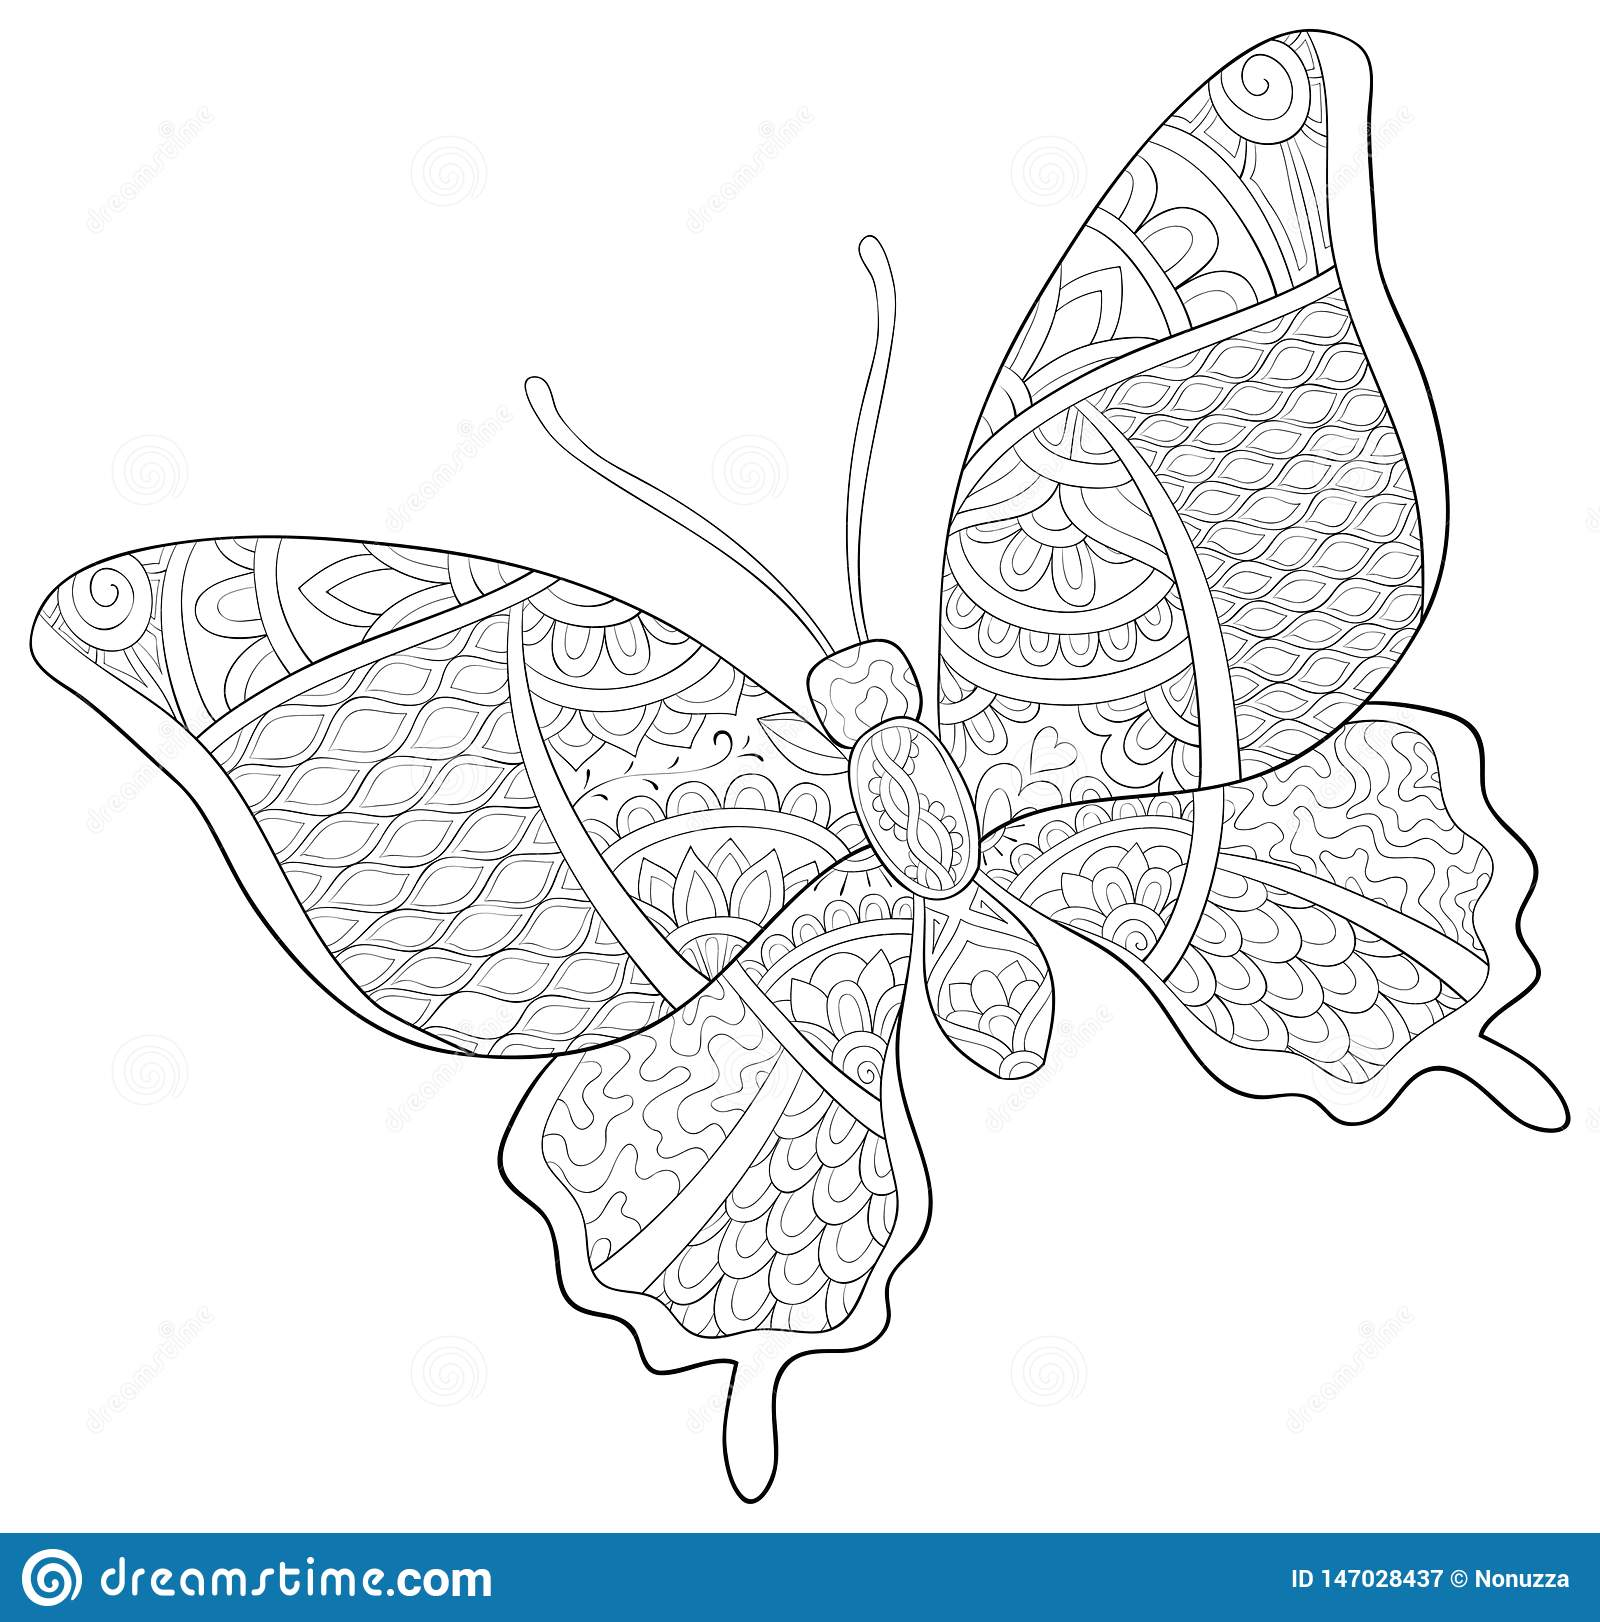 Adult Coloring Book Page A Cute Butterfly With Ornaments Image For Relaxing Zen Art Style Illustration Stock Vector Illustration Of Adult Doodle 147028437